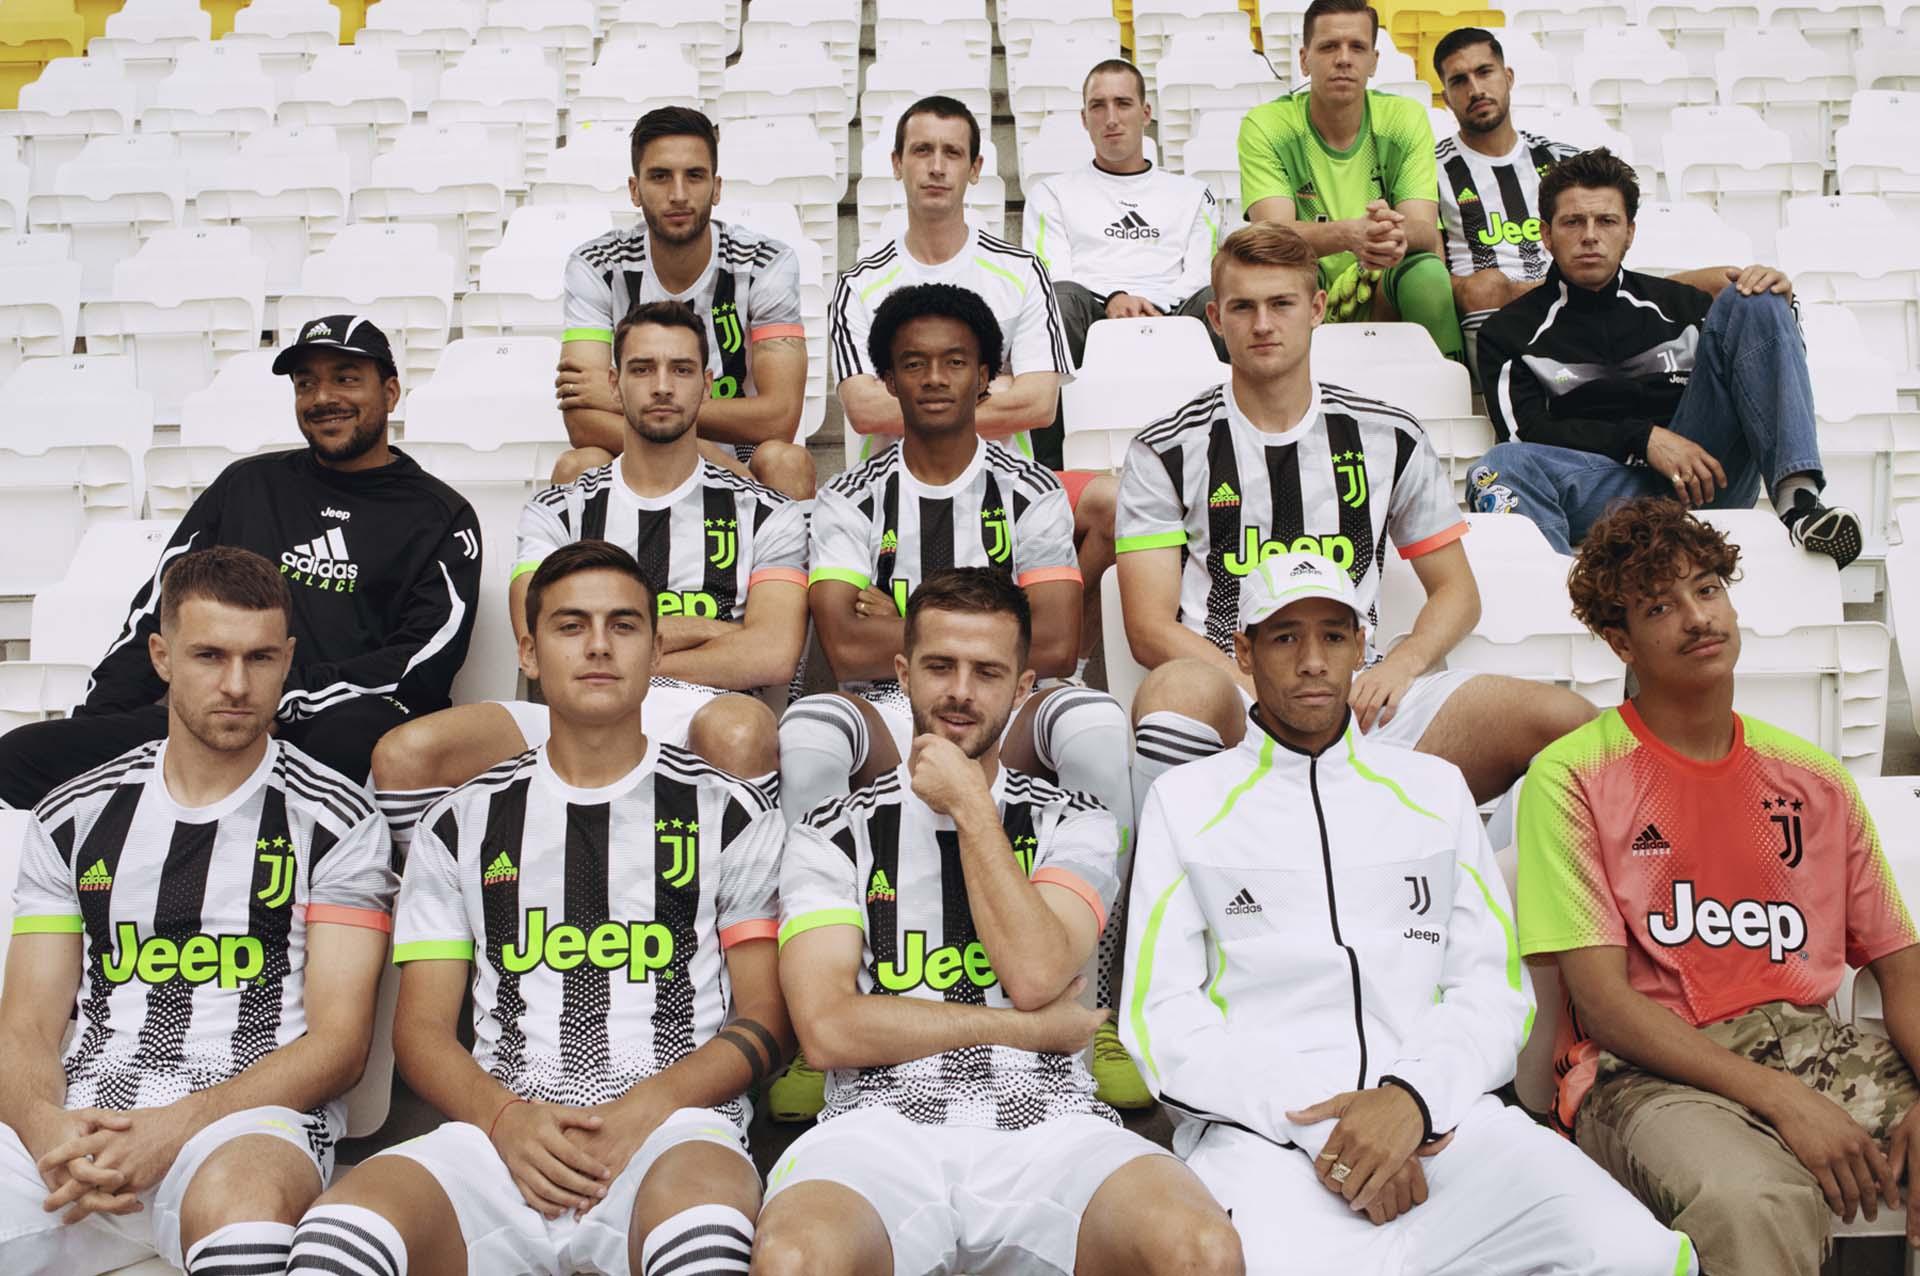 15-juventus-palace-adidas-collection.jpg